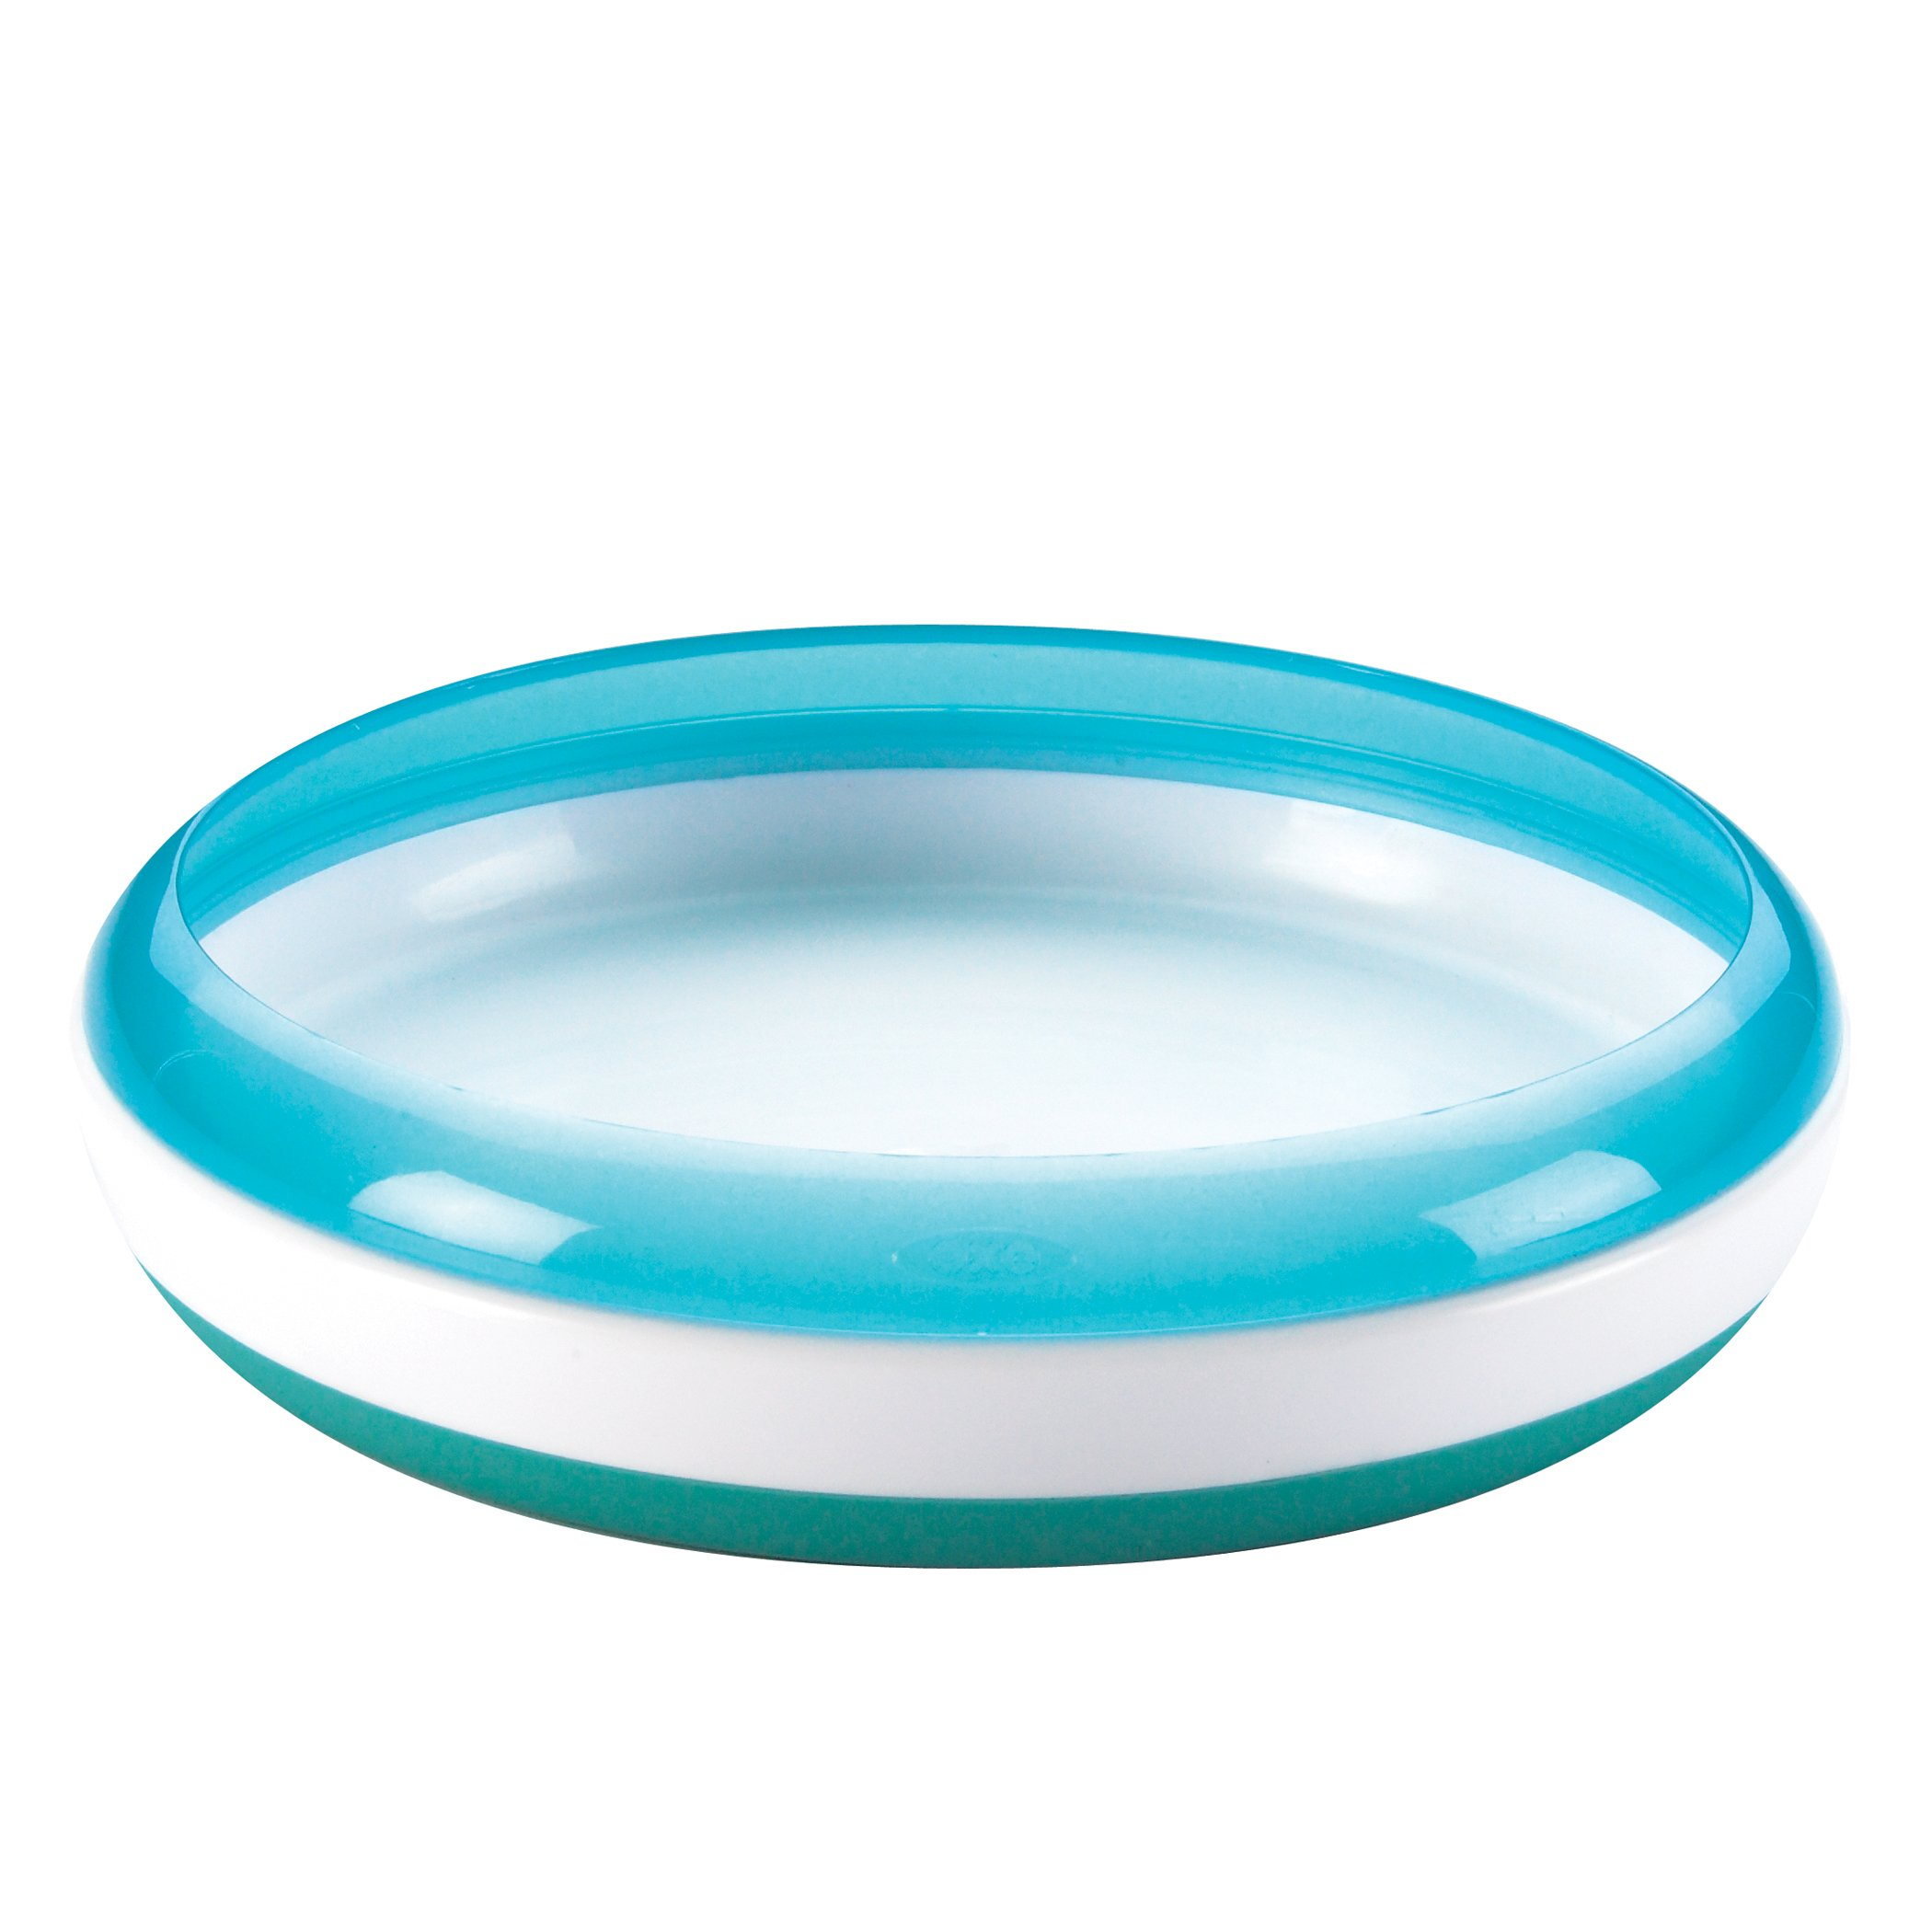 OXO Tot Plate with Removable Training Ring - Aqua